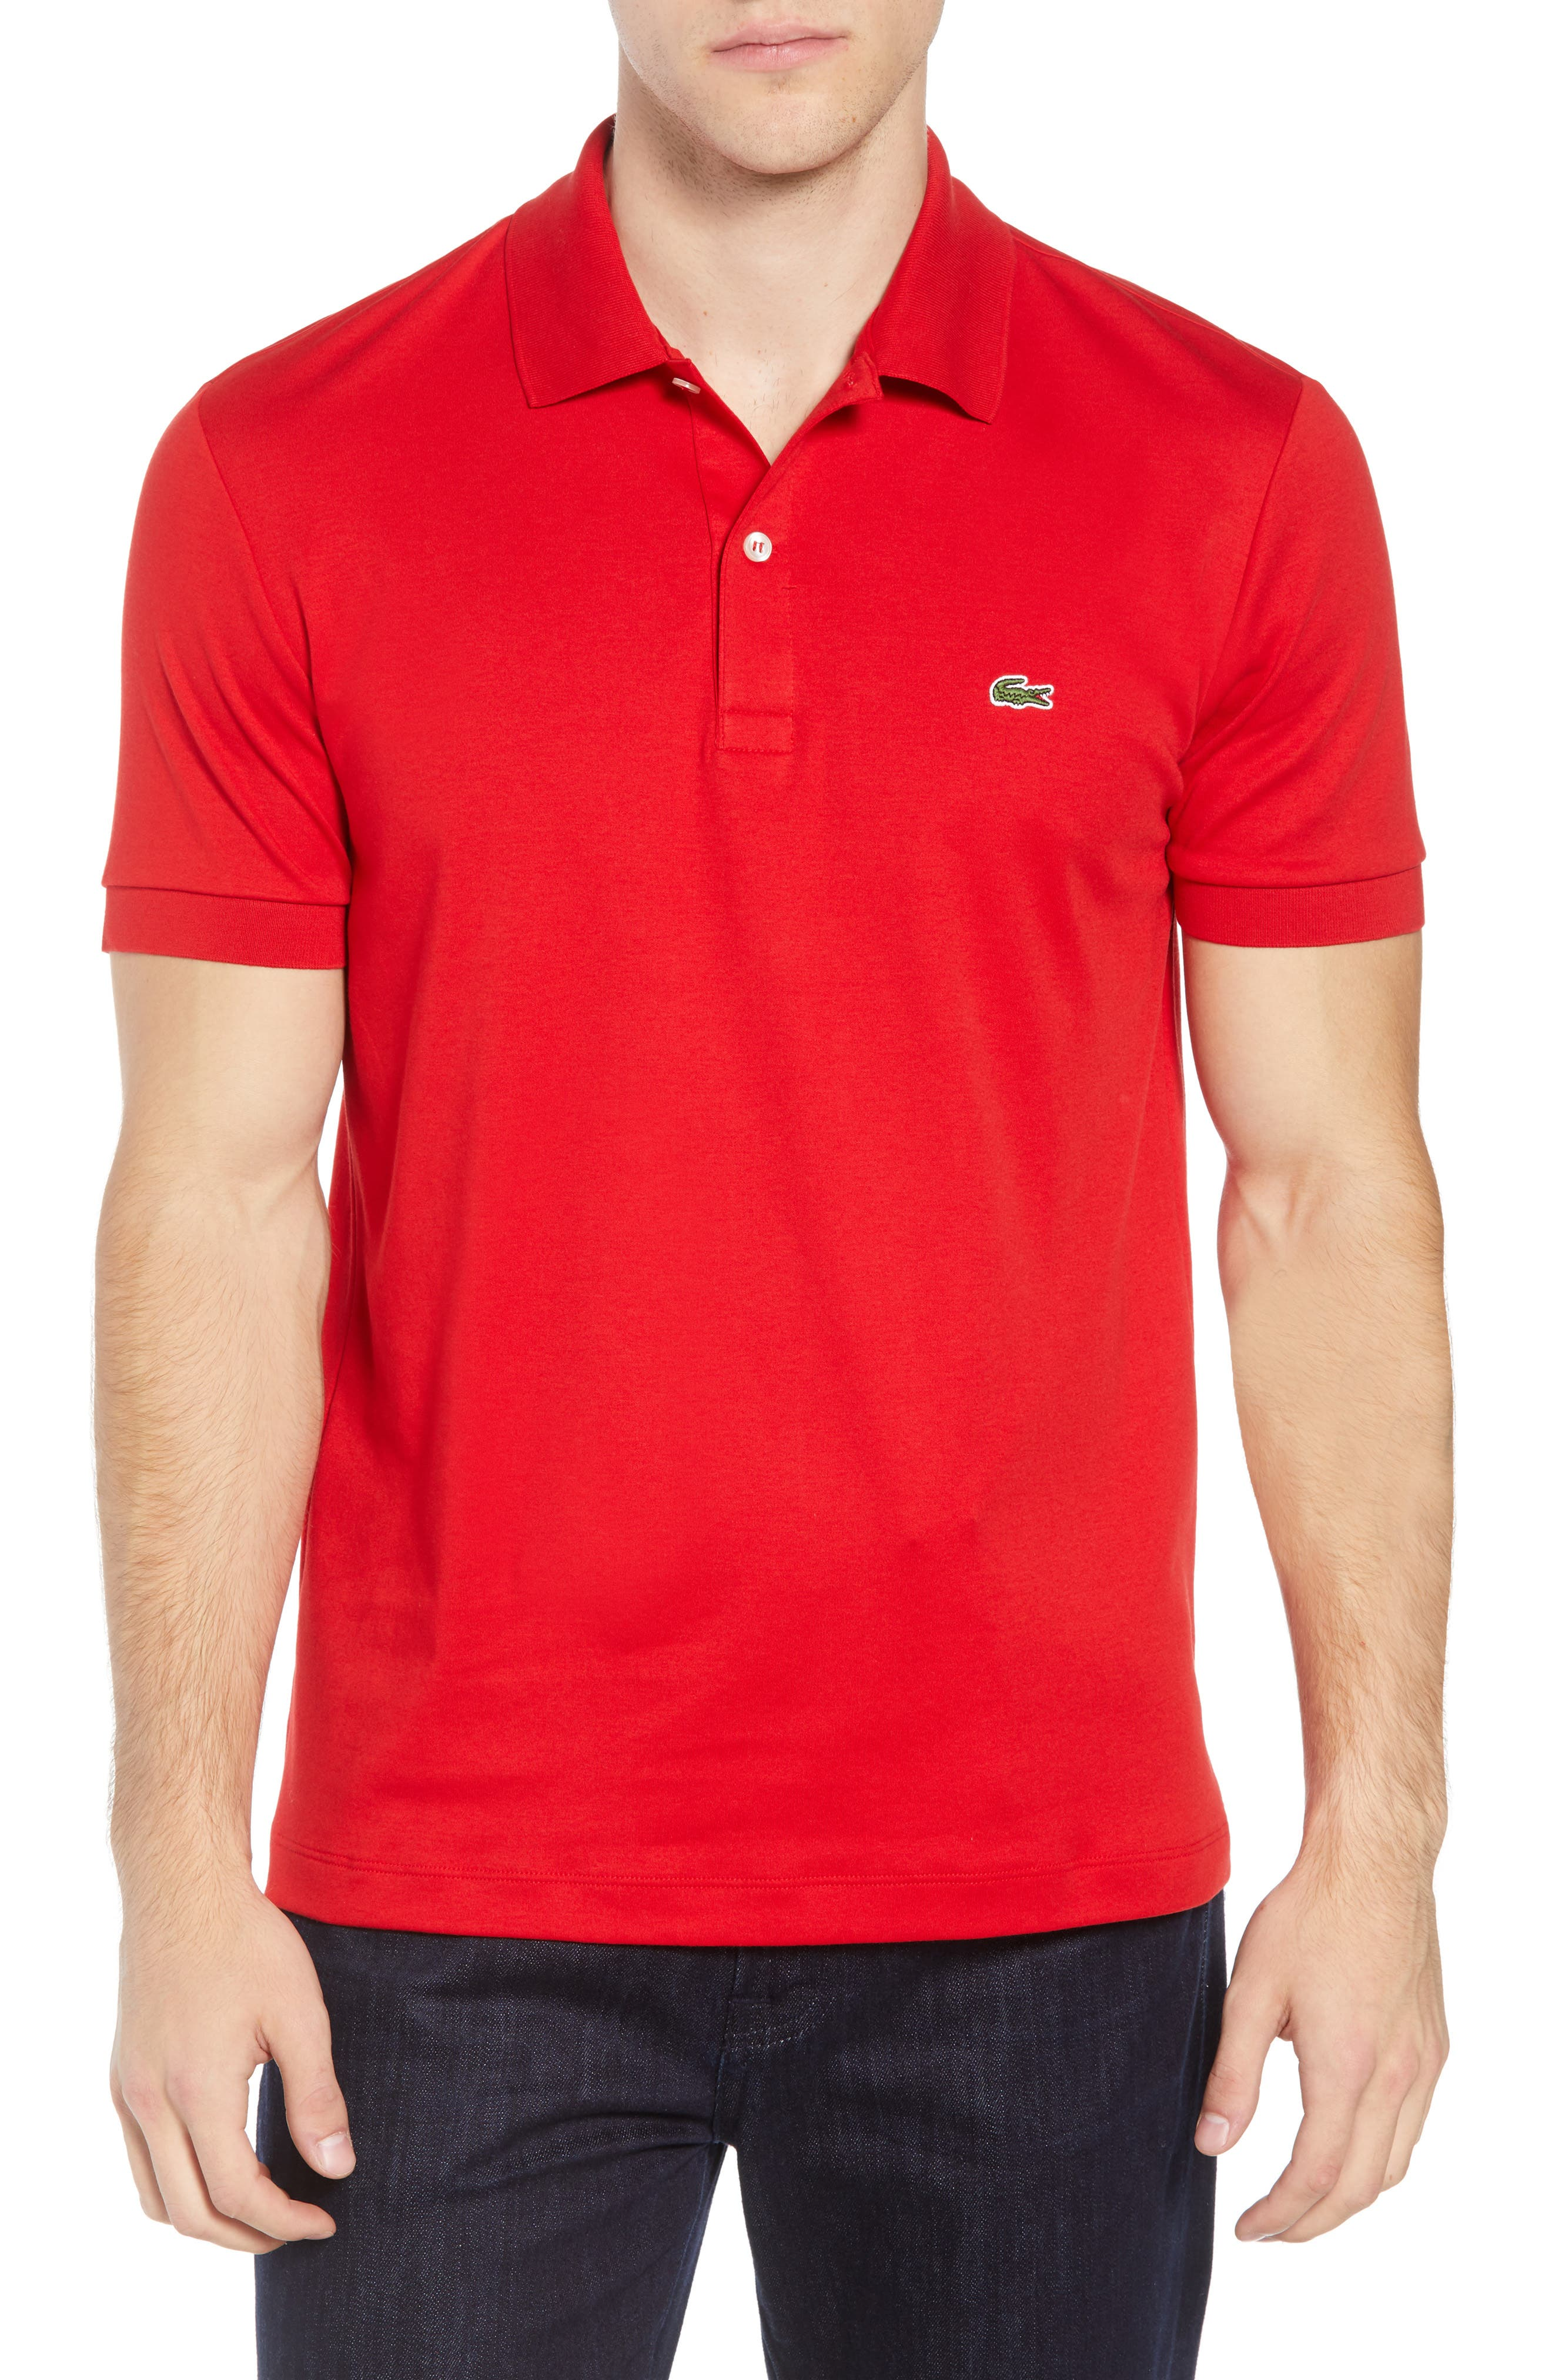 Lacoste Mens Polo Shirts Clothing Shoes Accessories Nordstrom